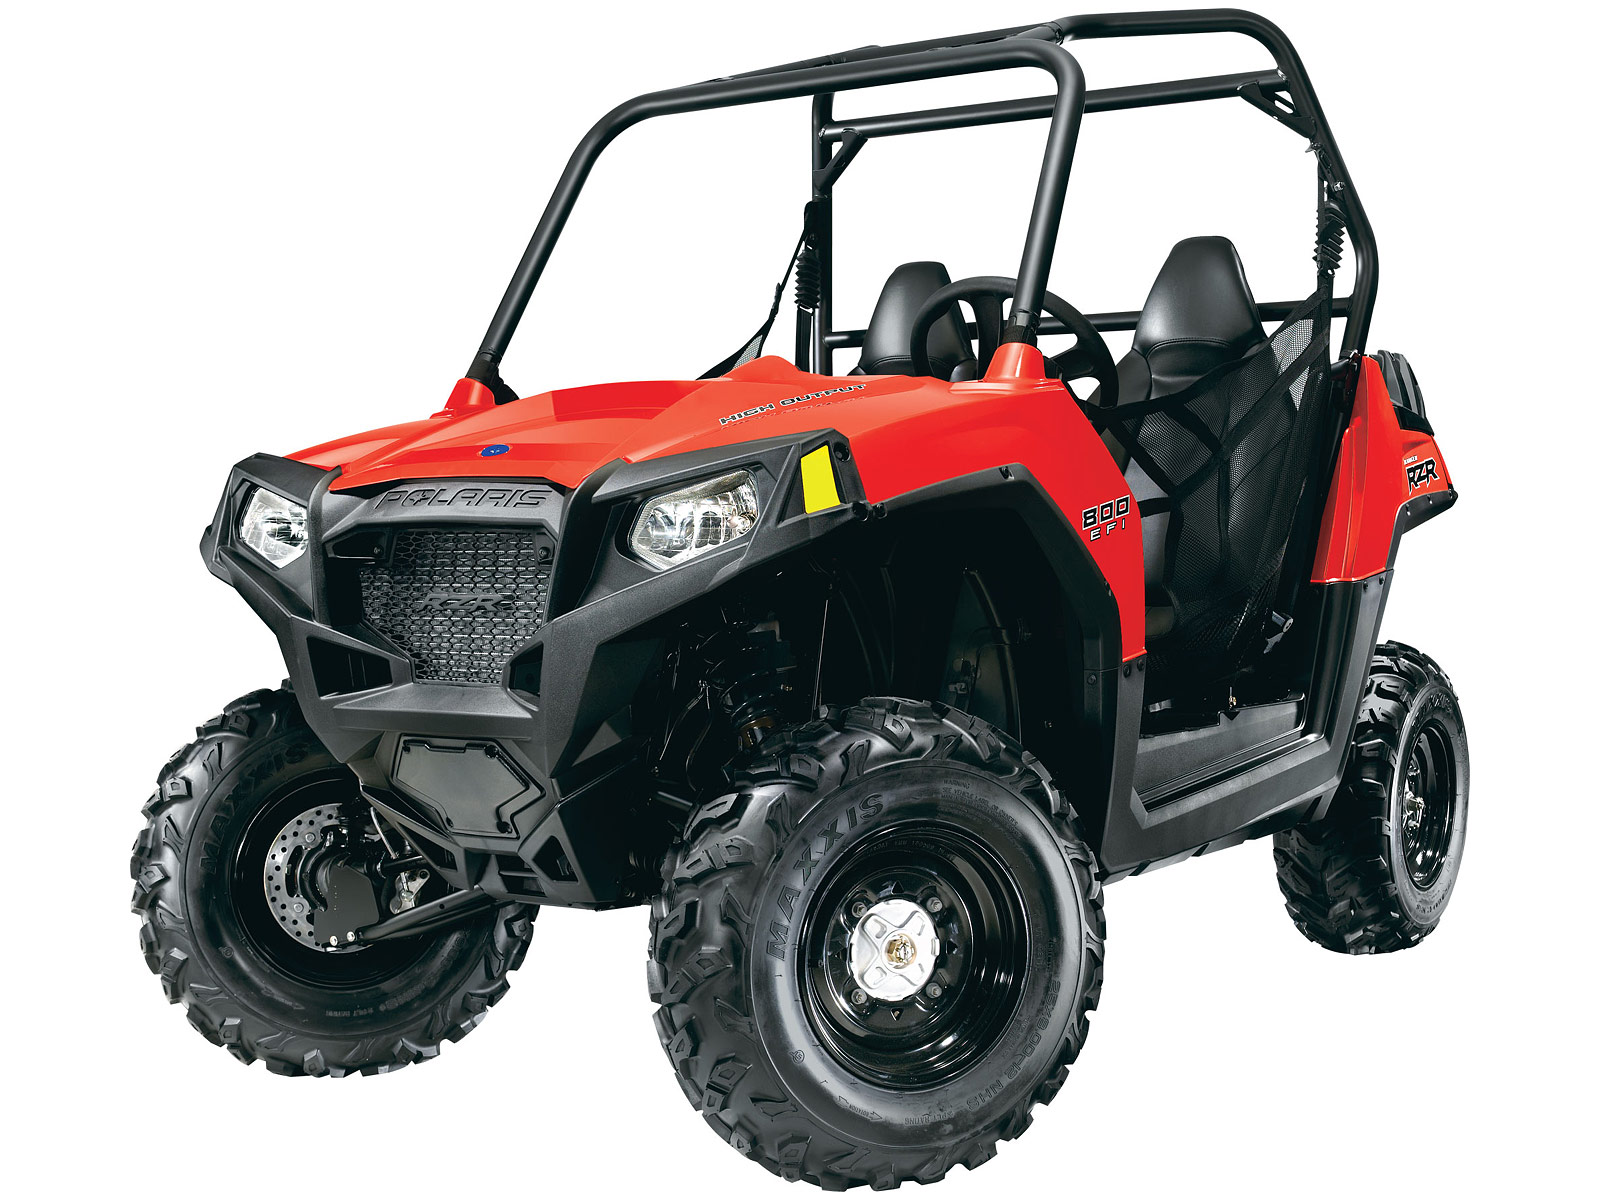 hight resolution of 2012 polaris ranger rzr 800 atv pictures 1